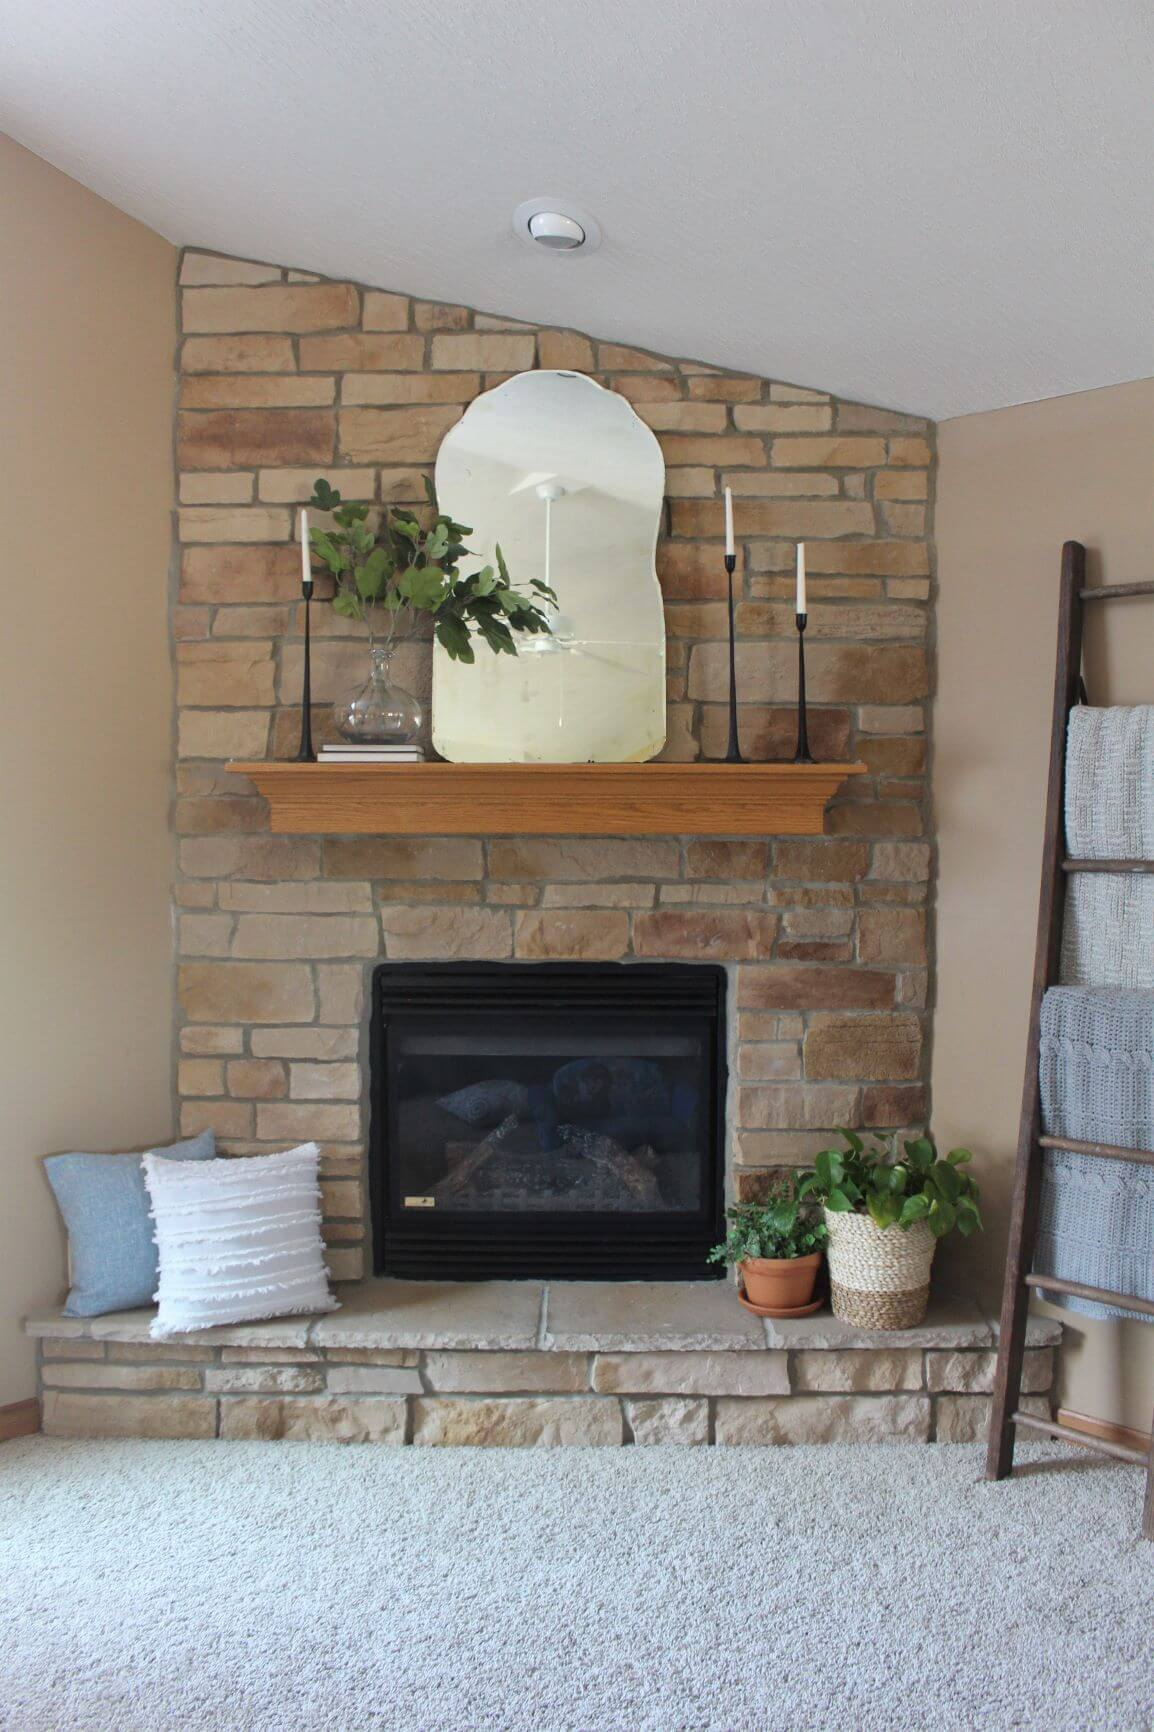 Stunning Stone Facade and Seating Warm Fireplace